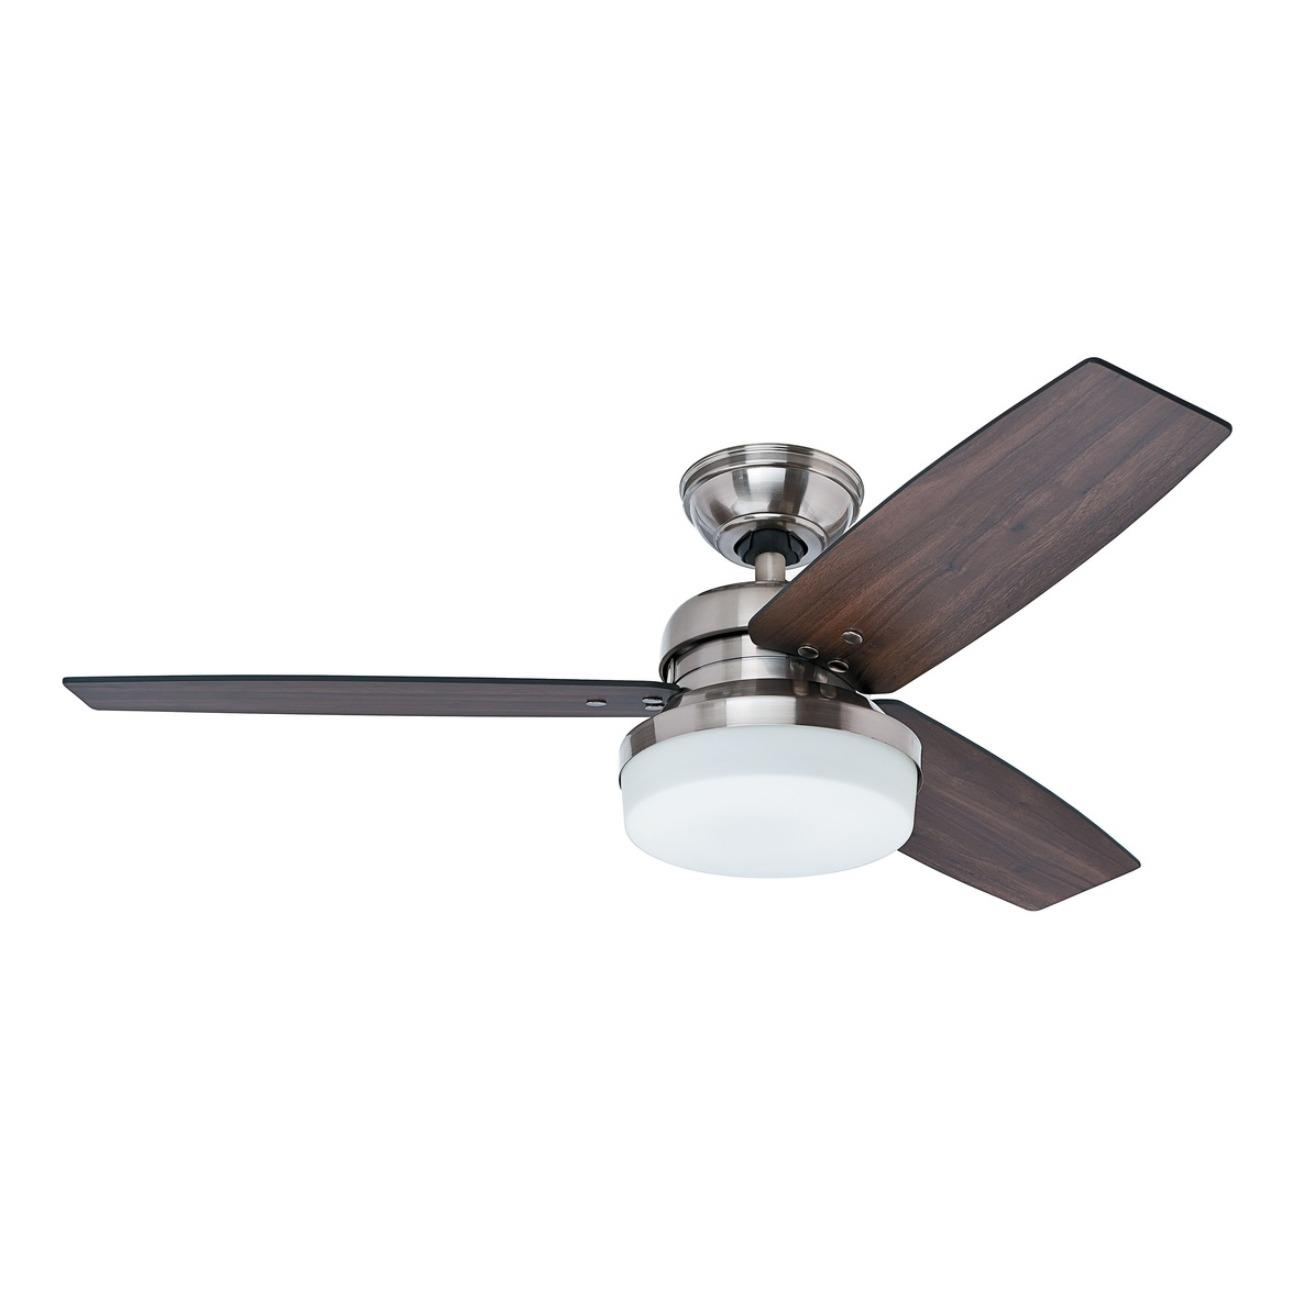 Hunter Philippines Price List Ceiling Fans For Sale Lazada Fan Wiring Switch Systems Galileo 48 Blade Diameter Hf 50888 Brushed Nickel With 3